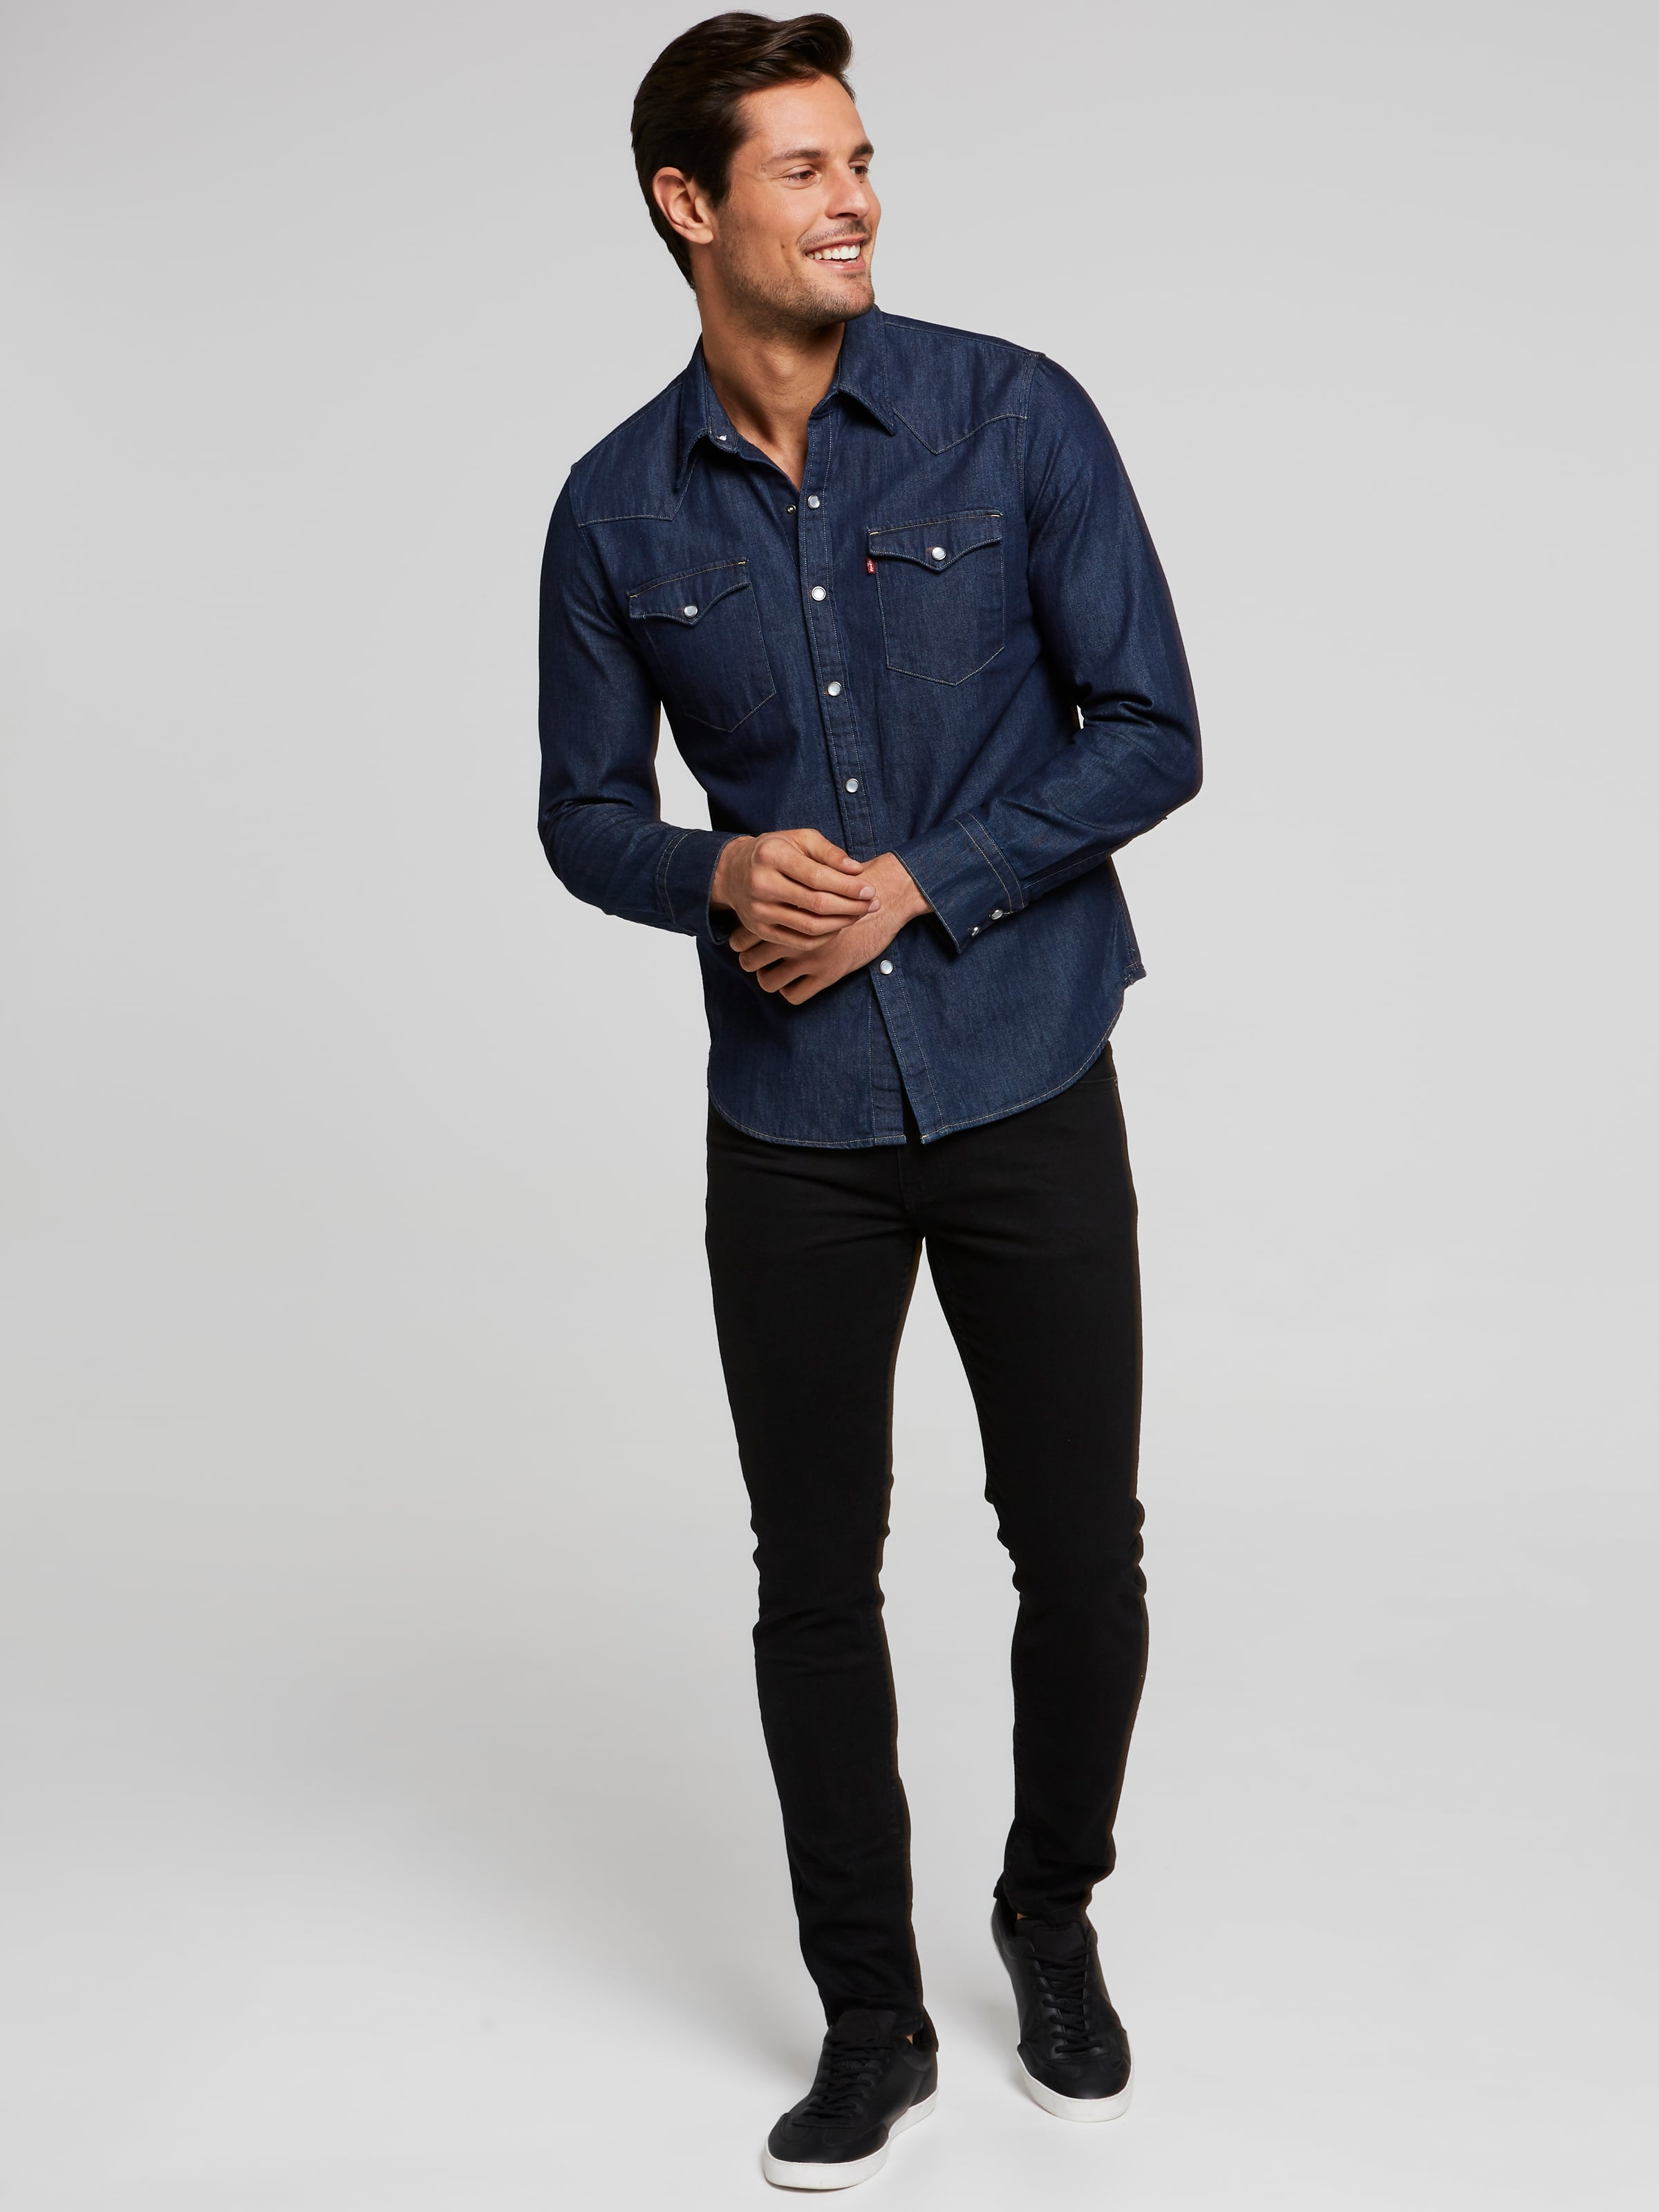 bcfbd59f308 ... Image for Levi Barstow Shirt from Just Jeans ...